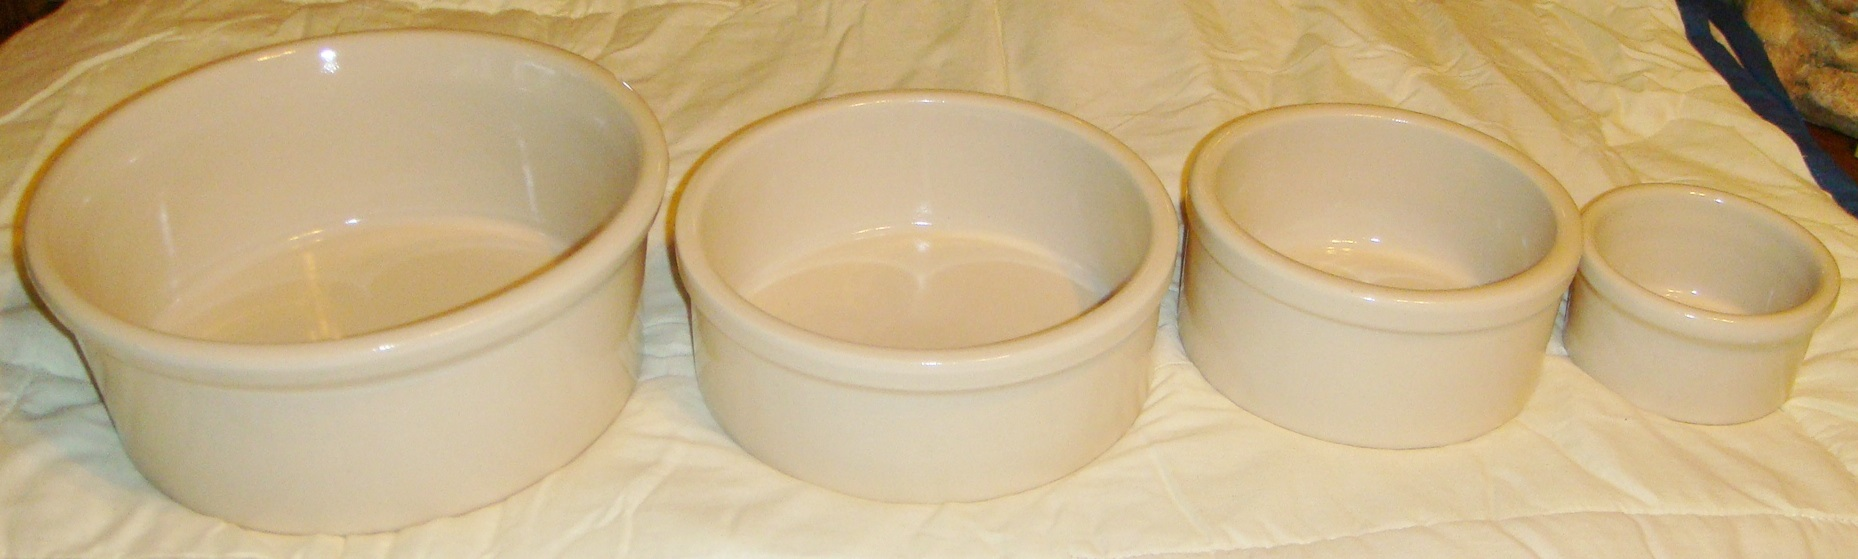 Bunnyrabbit Com Rabbit Bowl Water Crock Pet Water Bowl